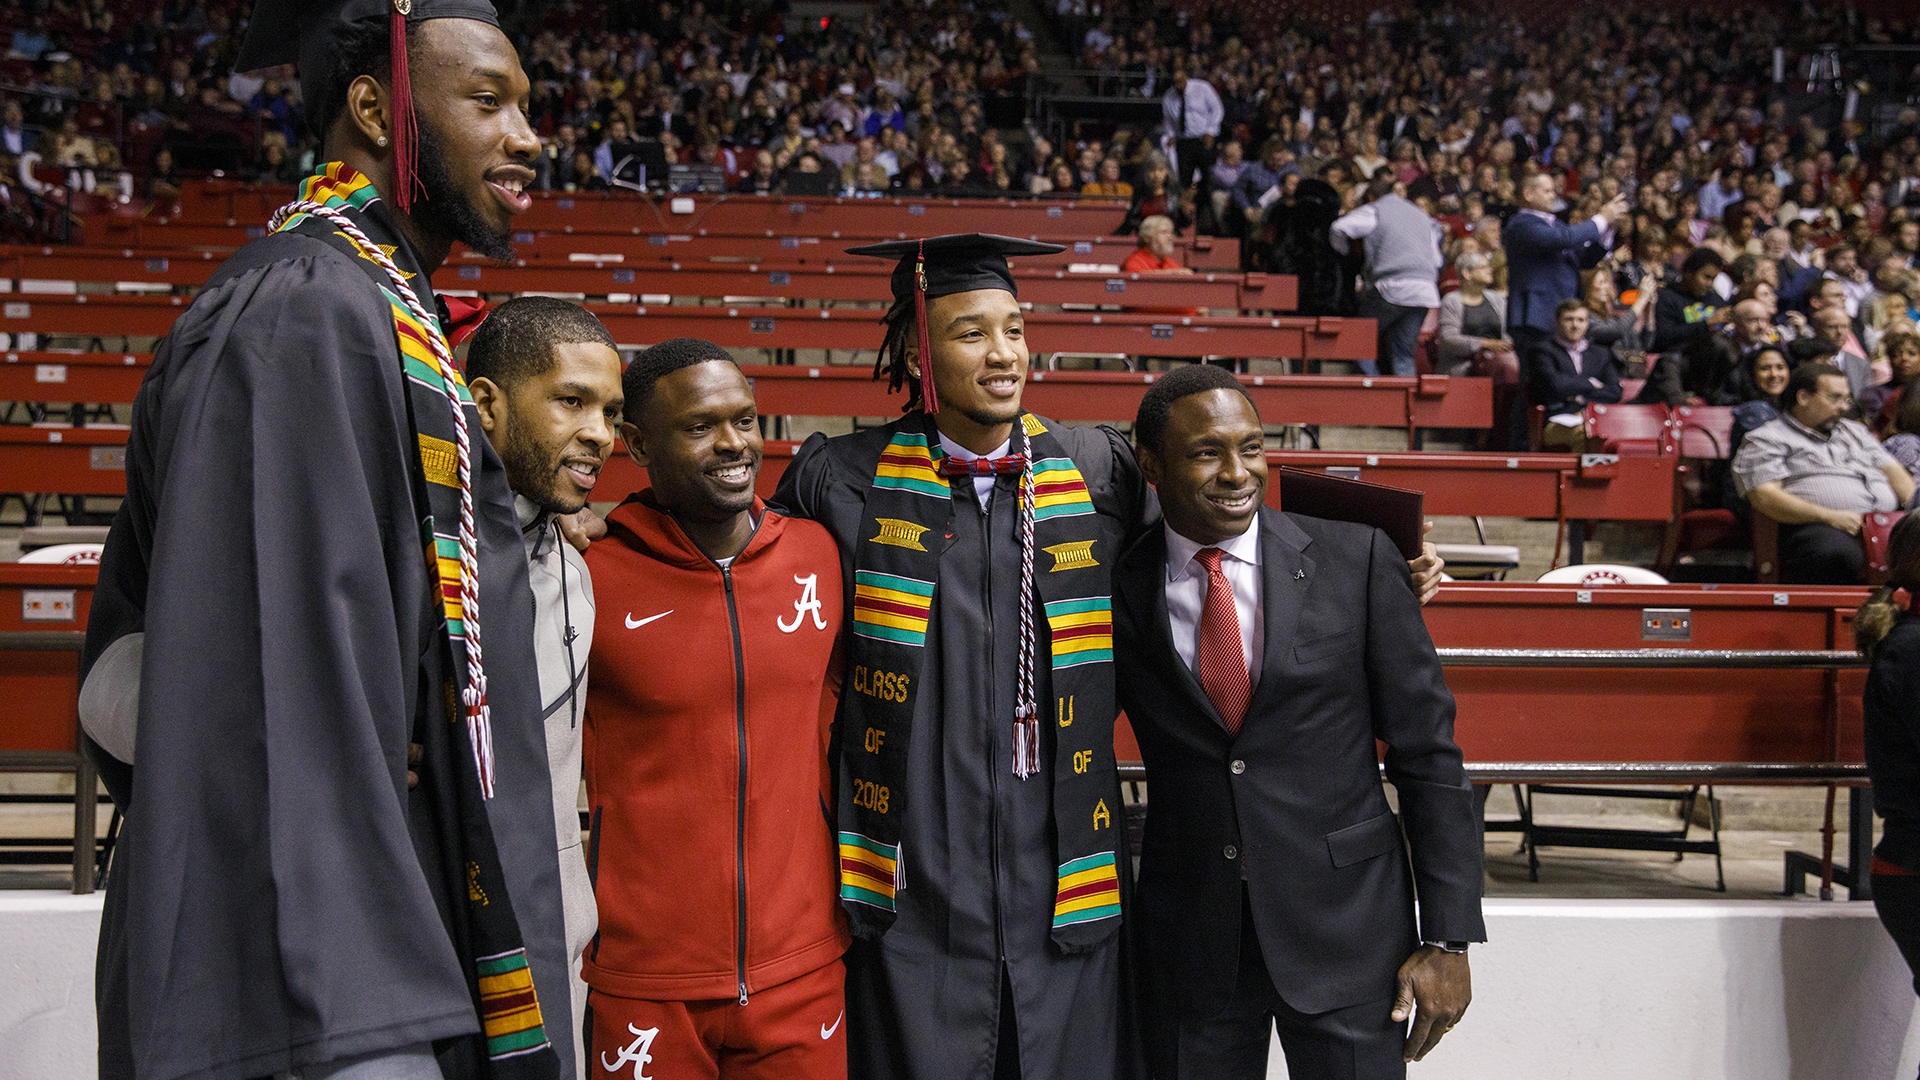 Two graduates pose for a picture with friends and a man in a suit.